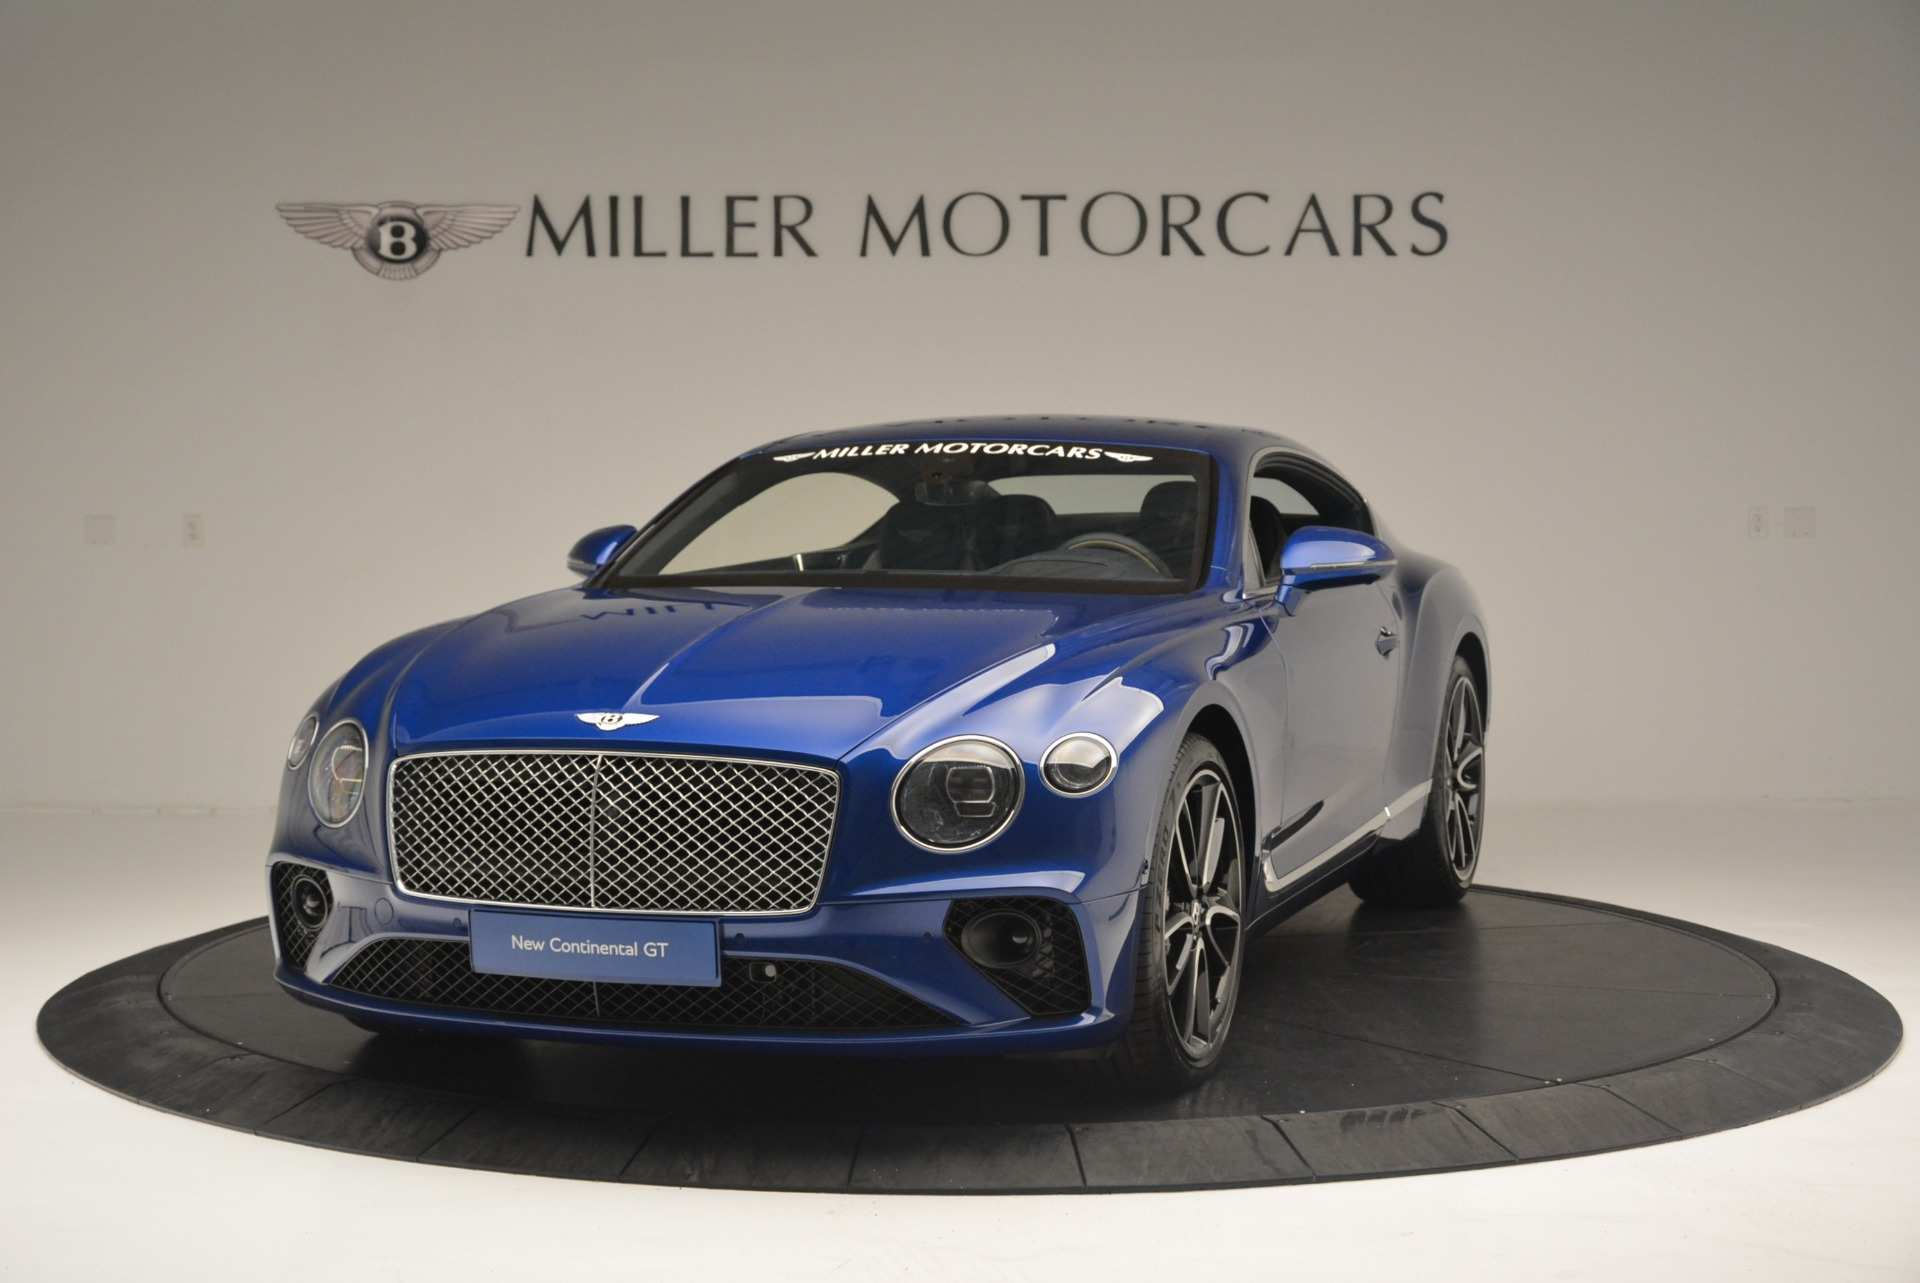 12 All New 2019 Bentley Continental Gt Release Date Specs and Review with 2019 Bentley Continental Gt Release Date